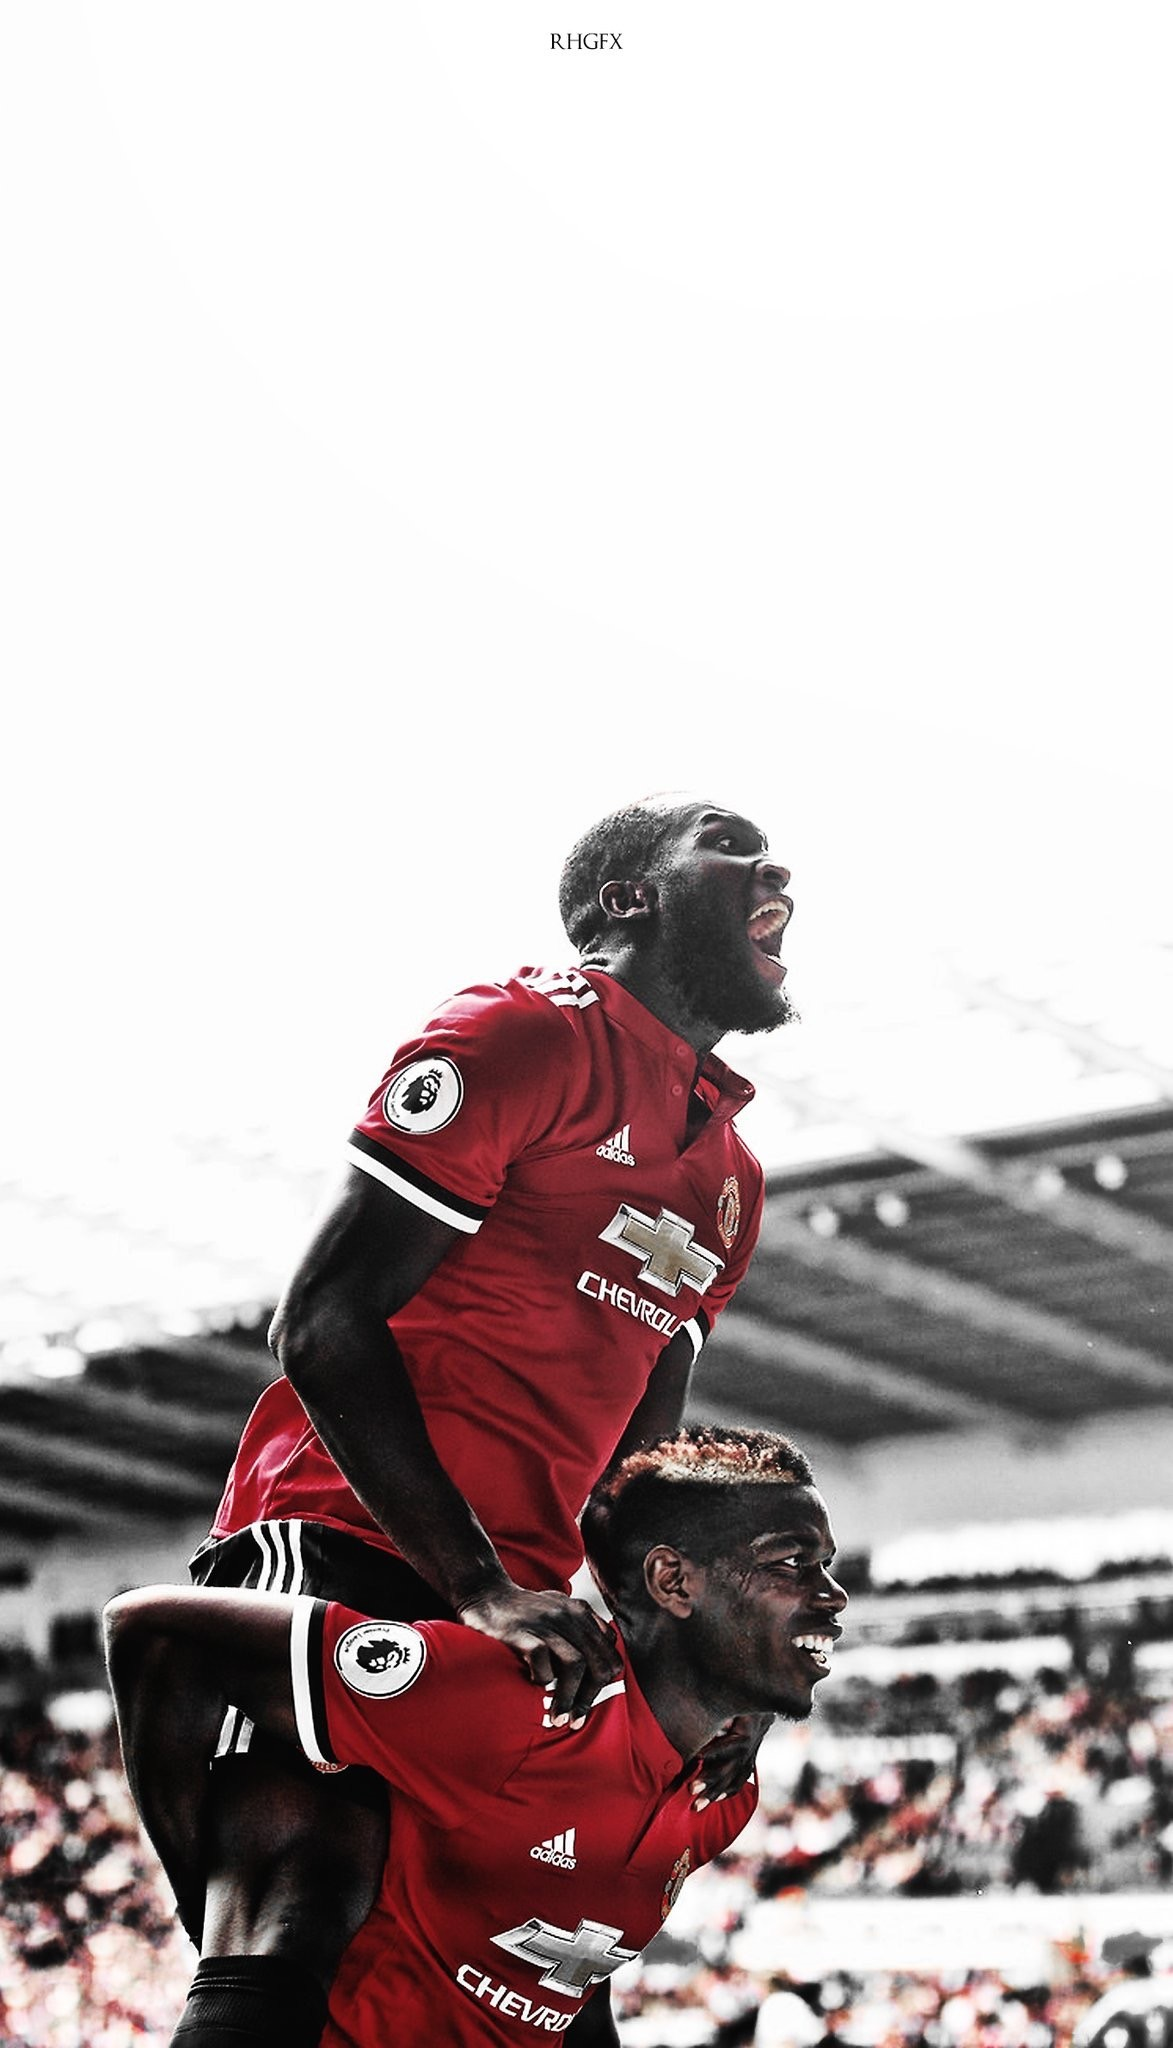 Manchester United Wallpaper Iphone X Wallpaper Logo Manchester United Terbaru 2018 70 Pictures